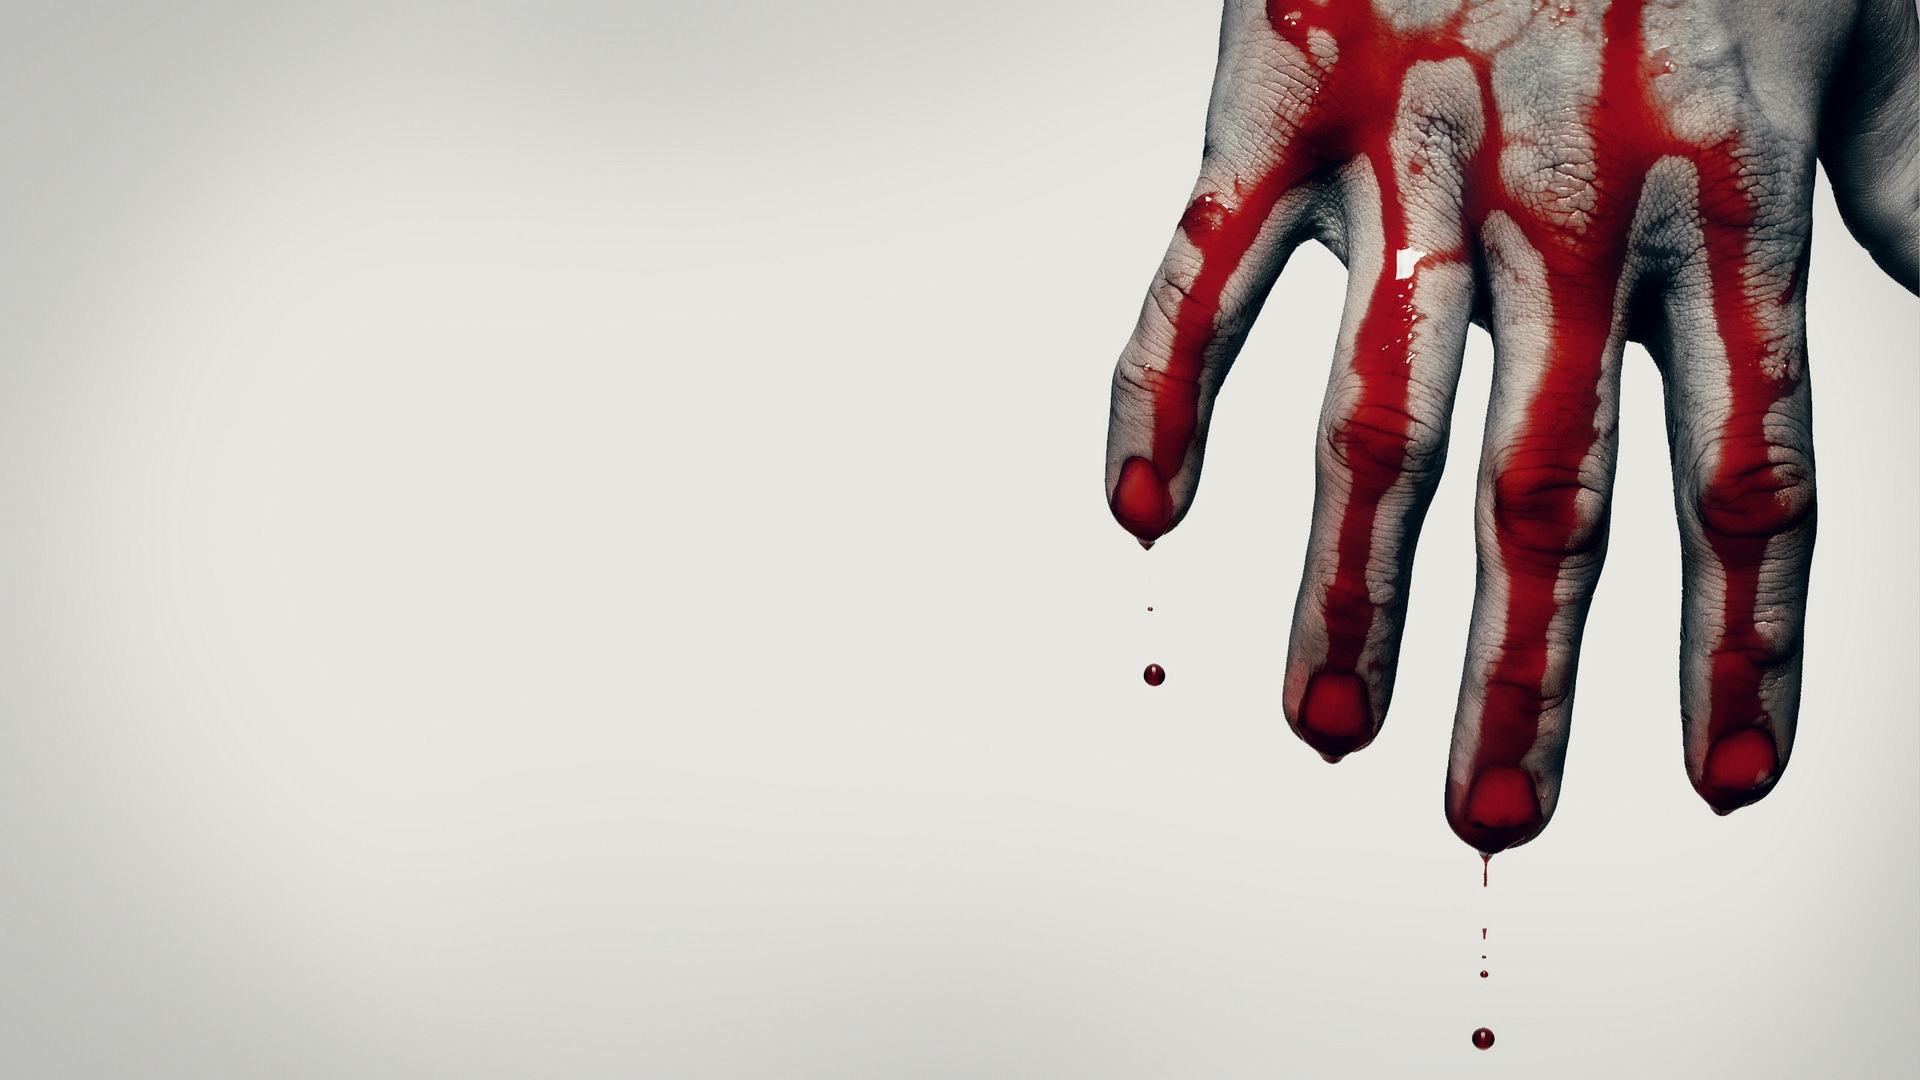 hand with blood scary image background